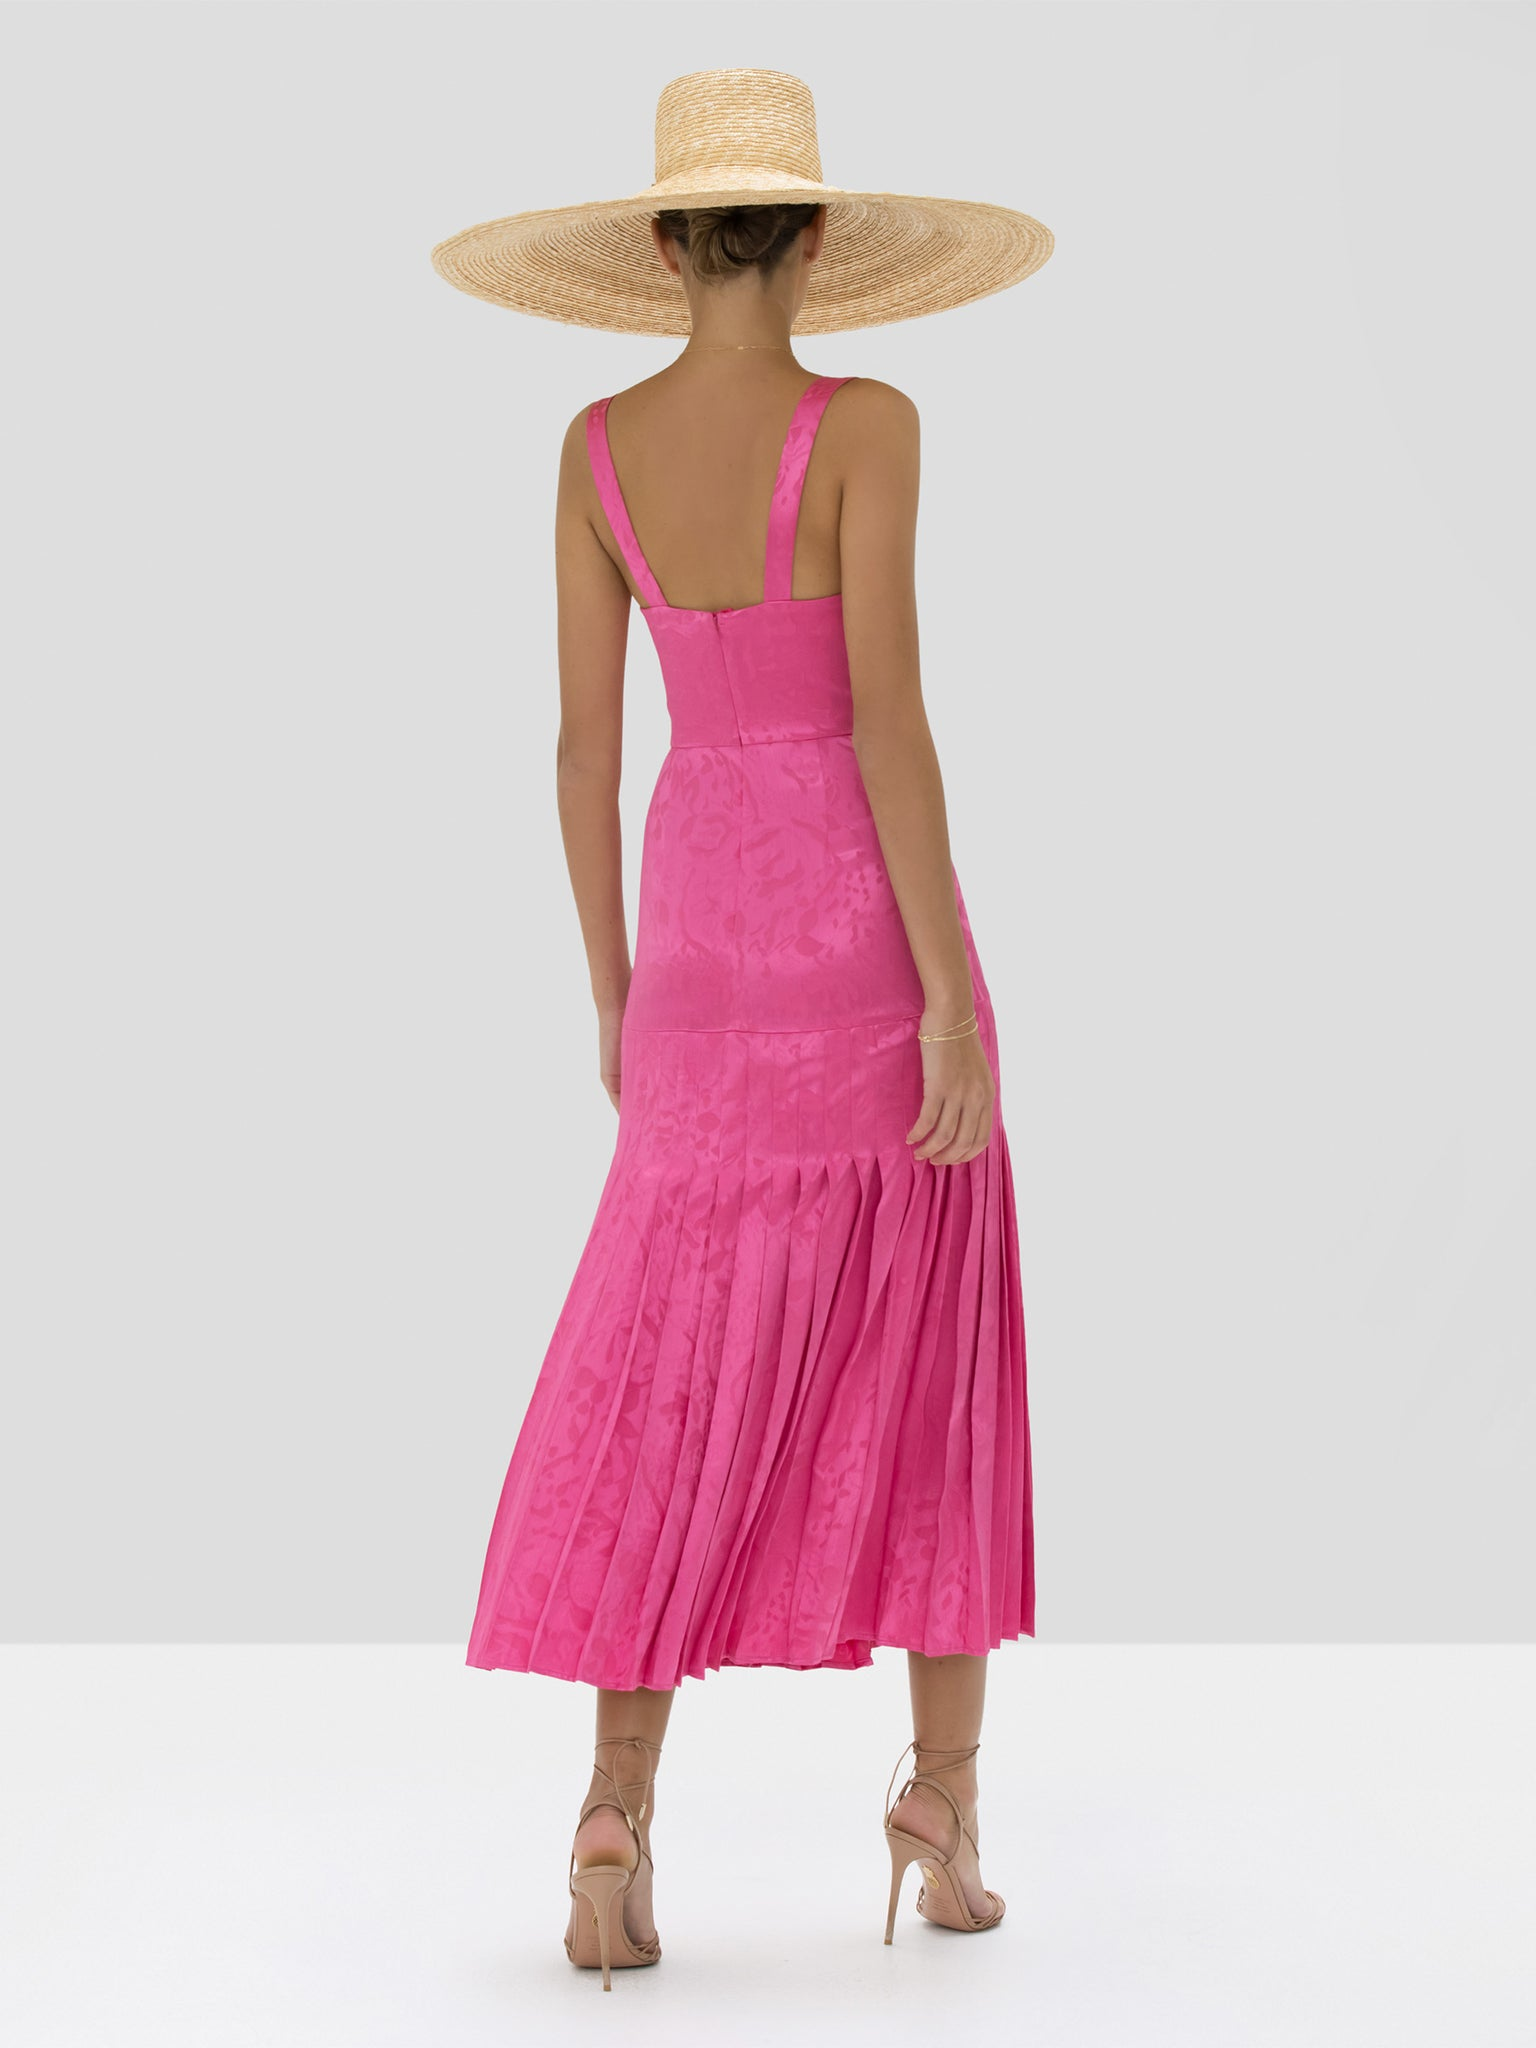 Alexis Lovra Dress in Vivid Fuschia from Spring Summer 2020 - Rear View